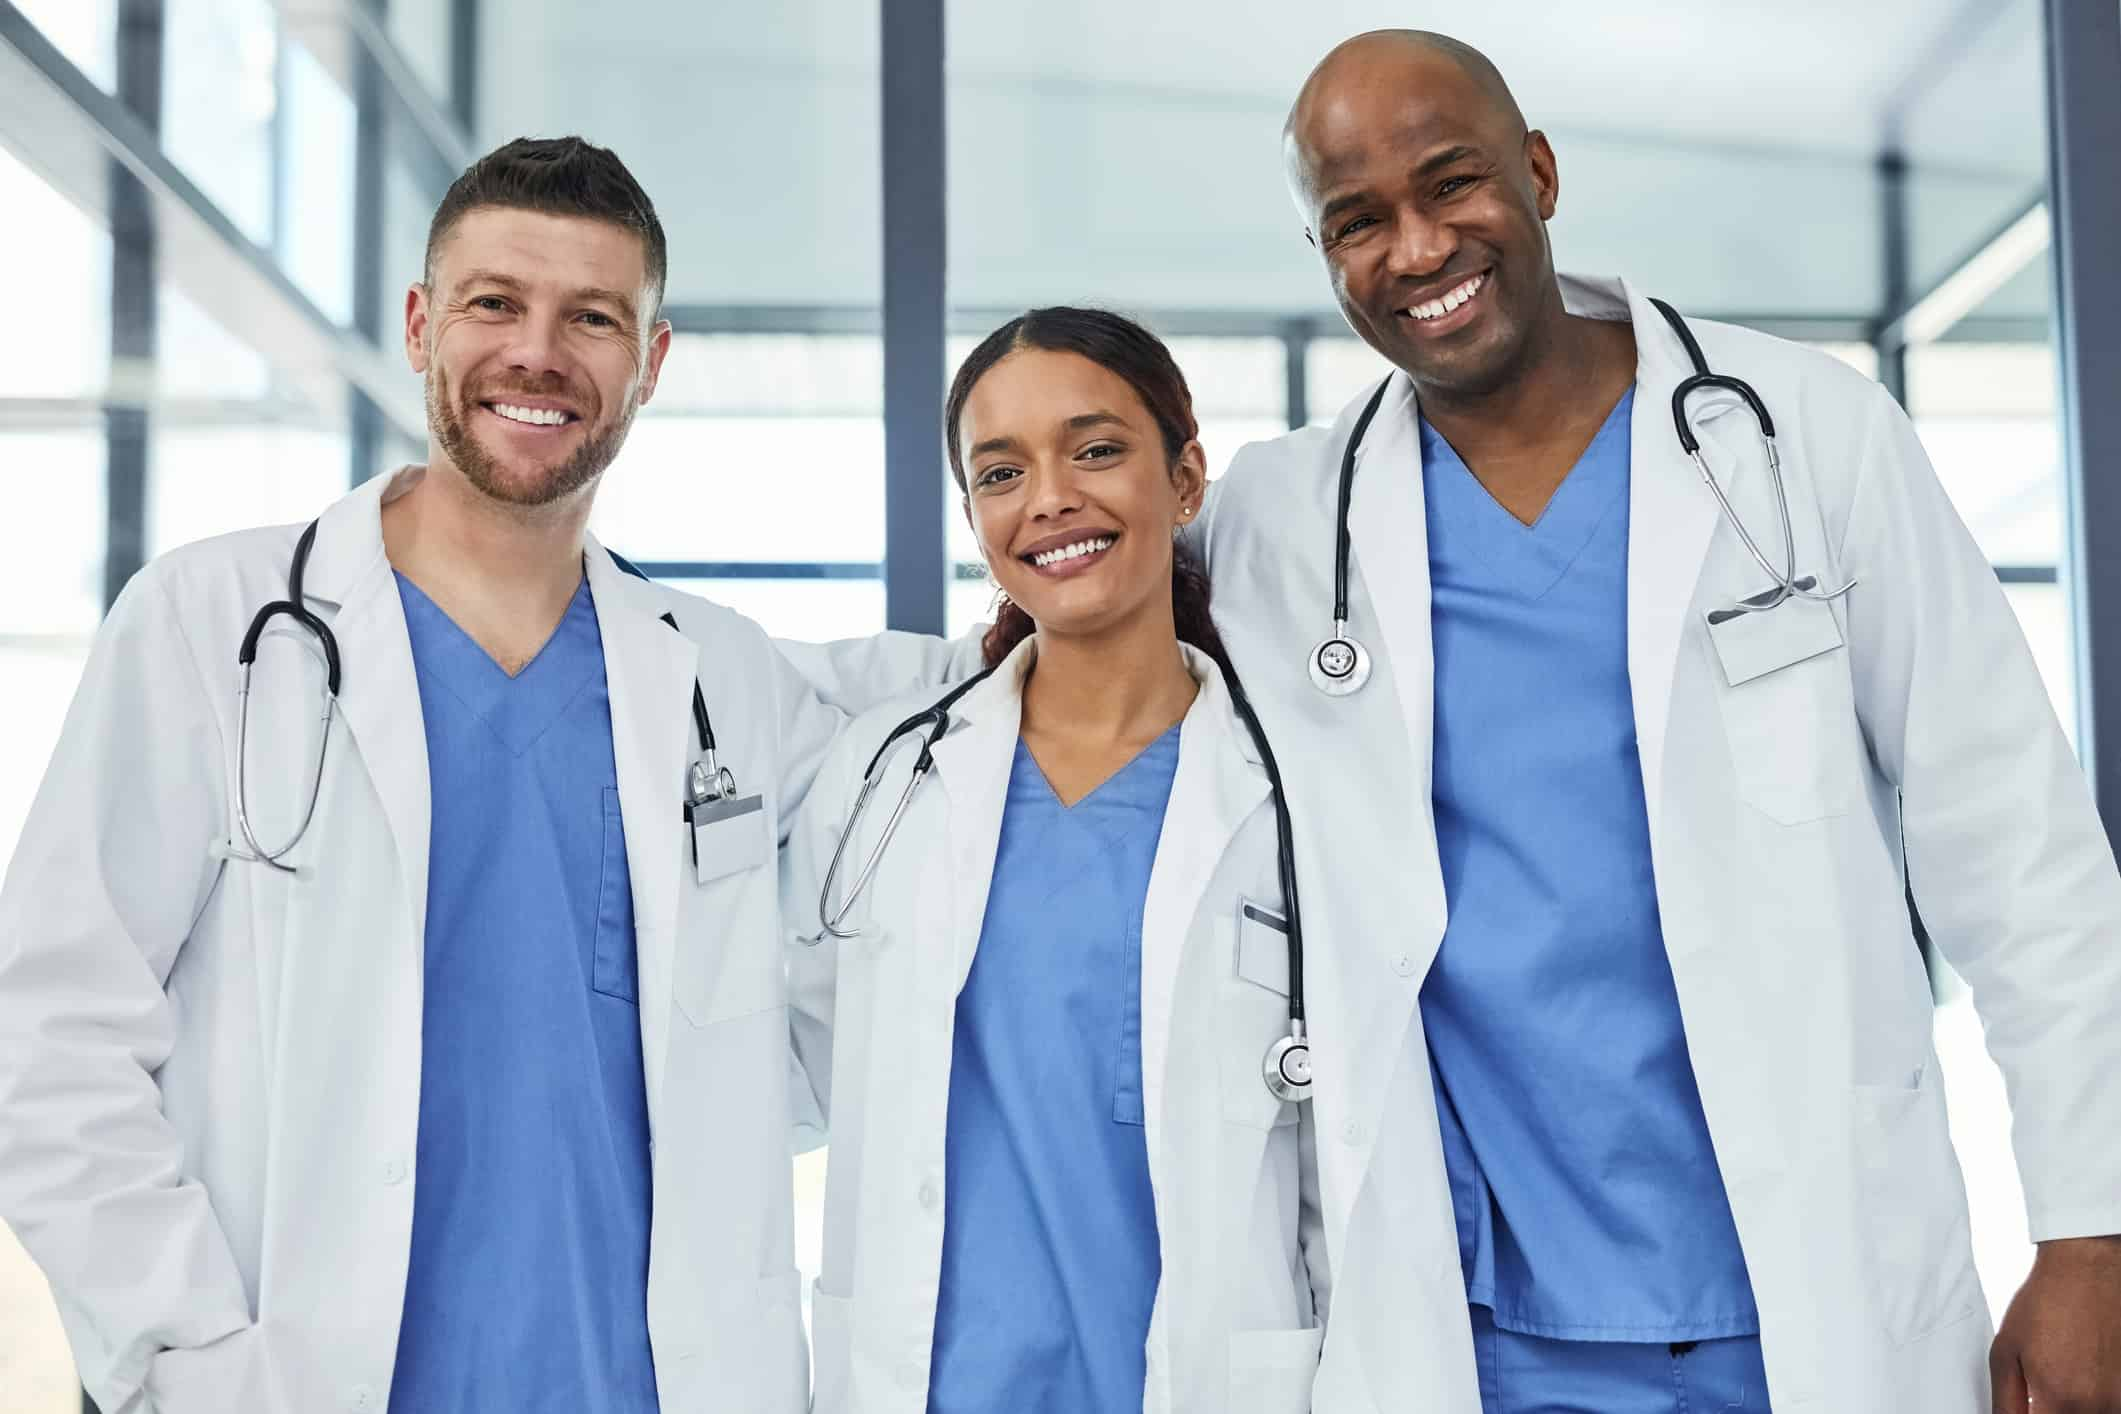 Diversity in Medicine: An Innovative Approach to Resident Physician Recruitment